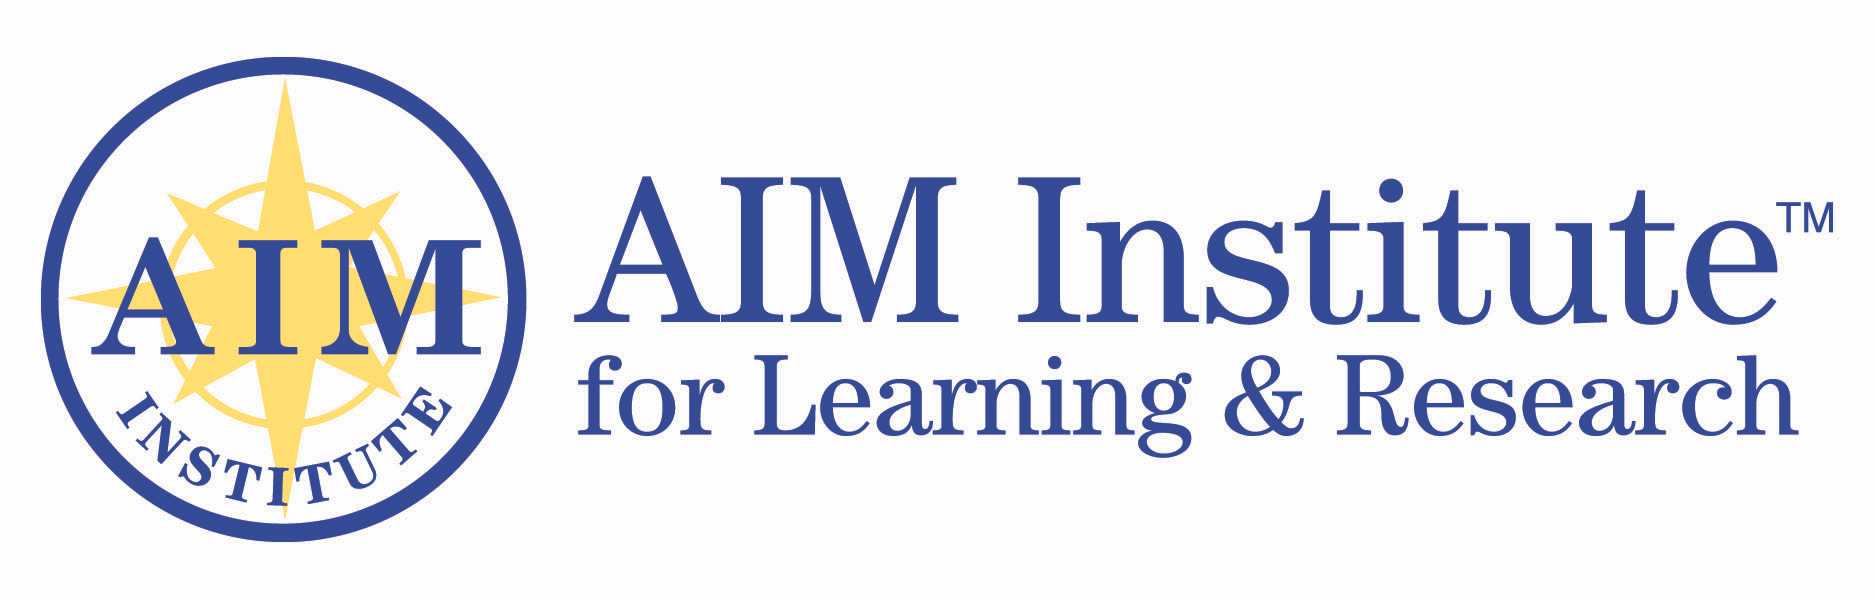 Aim Institute for Learning and Research